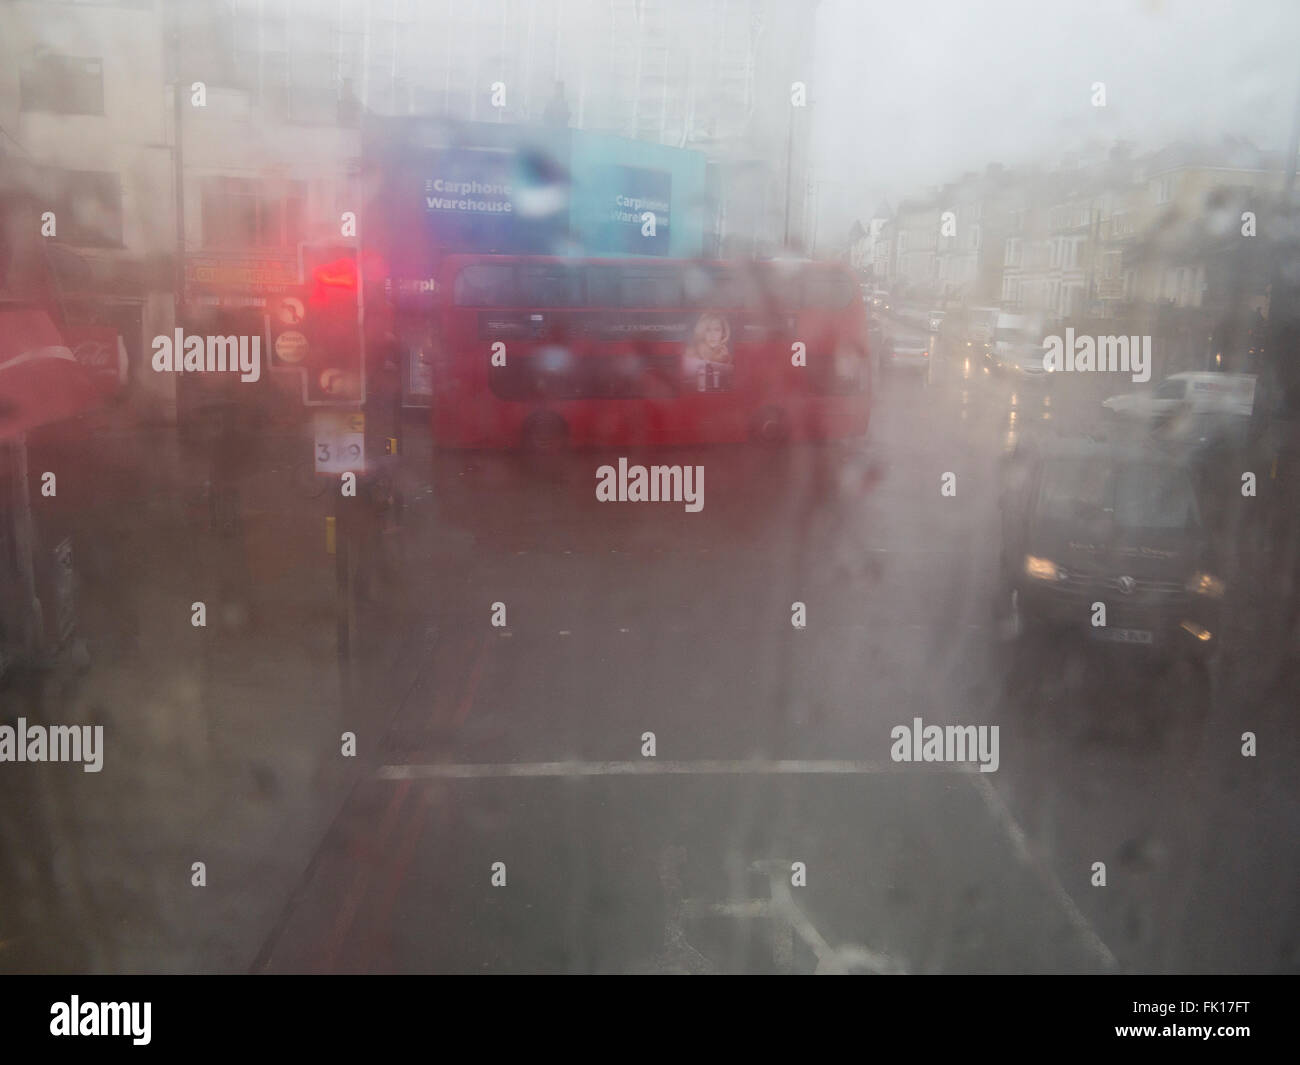 Beschlagene Fenster Wohnzimmer Fogged Up Windows Stockfotos Fogged Up Windows Bilder Alamy